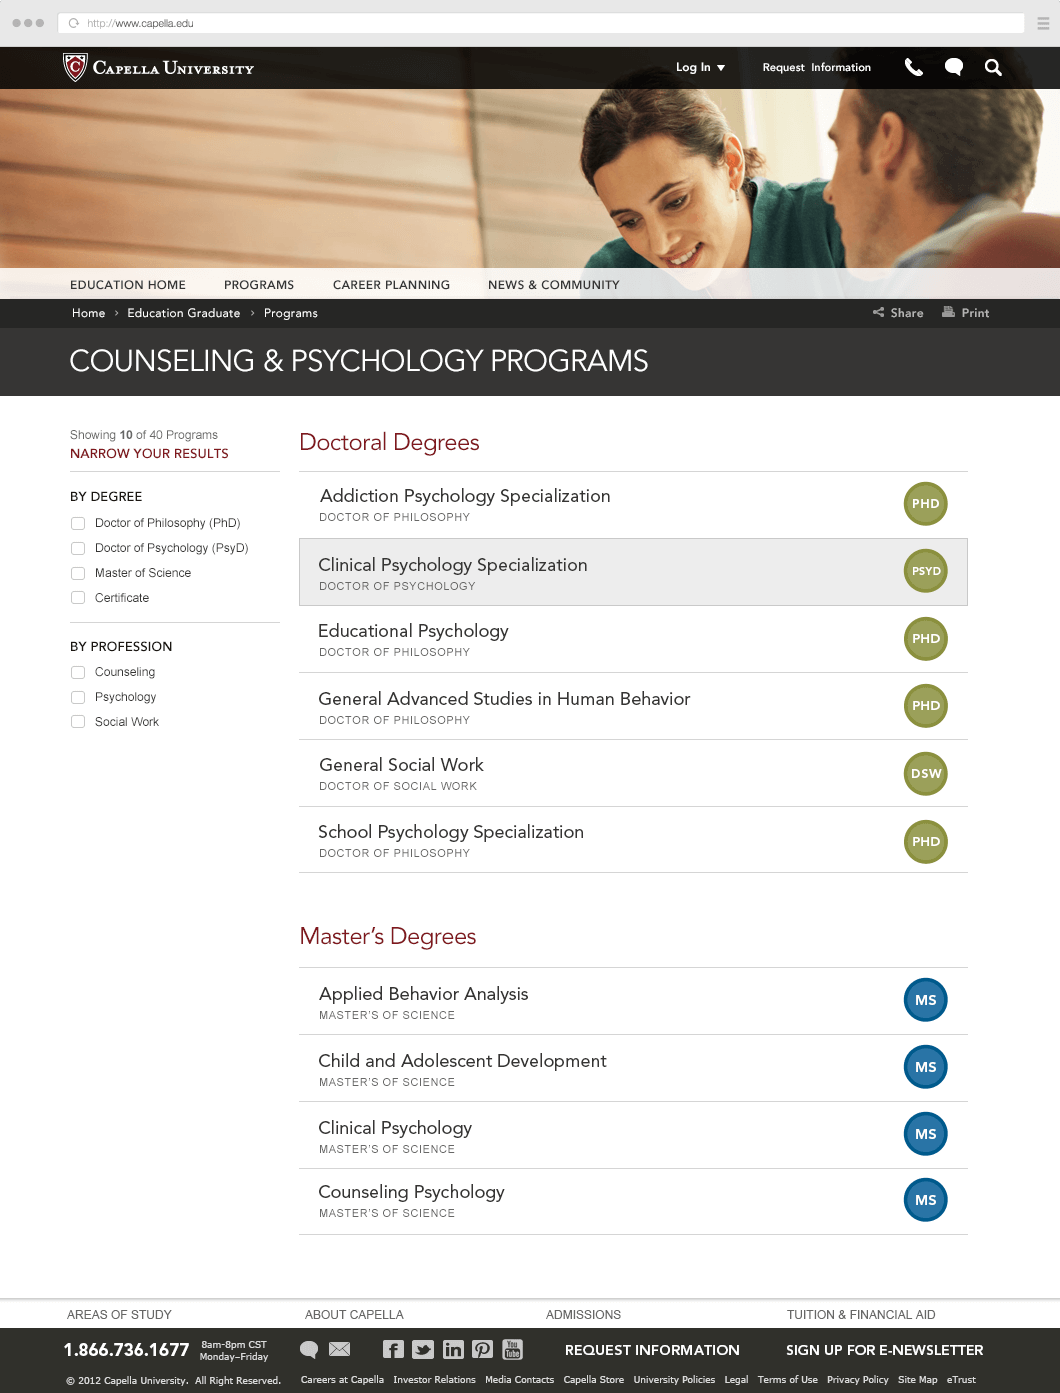 Capella.edu List of Degree Programs